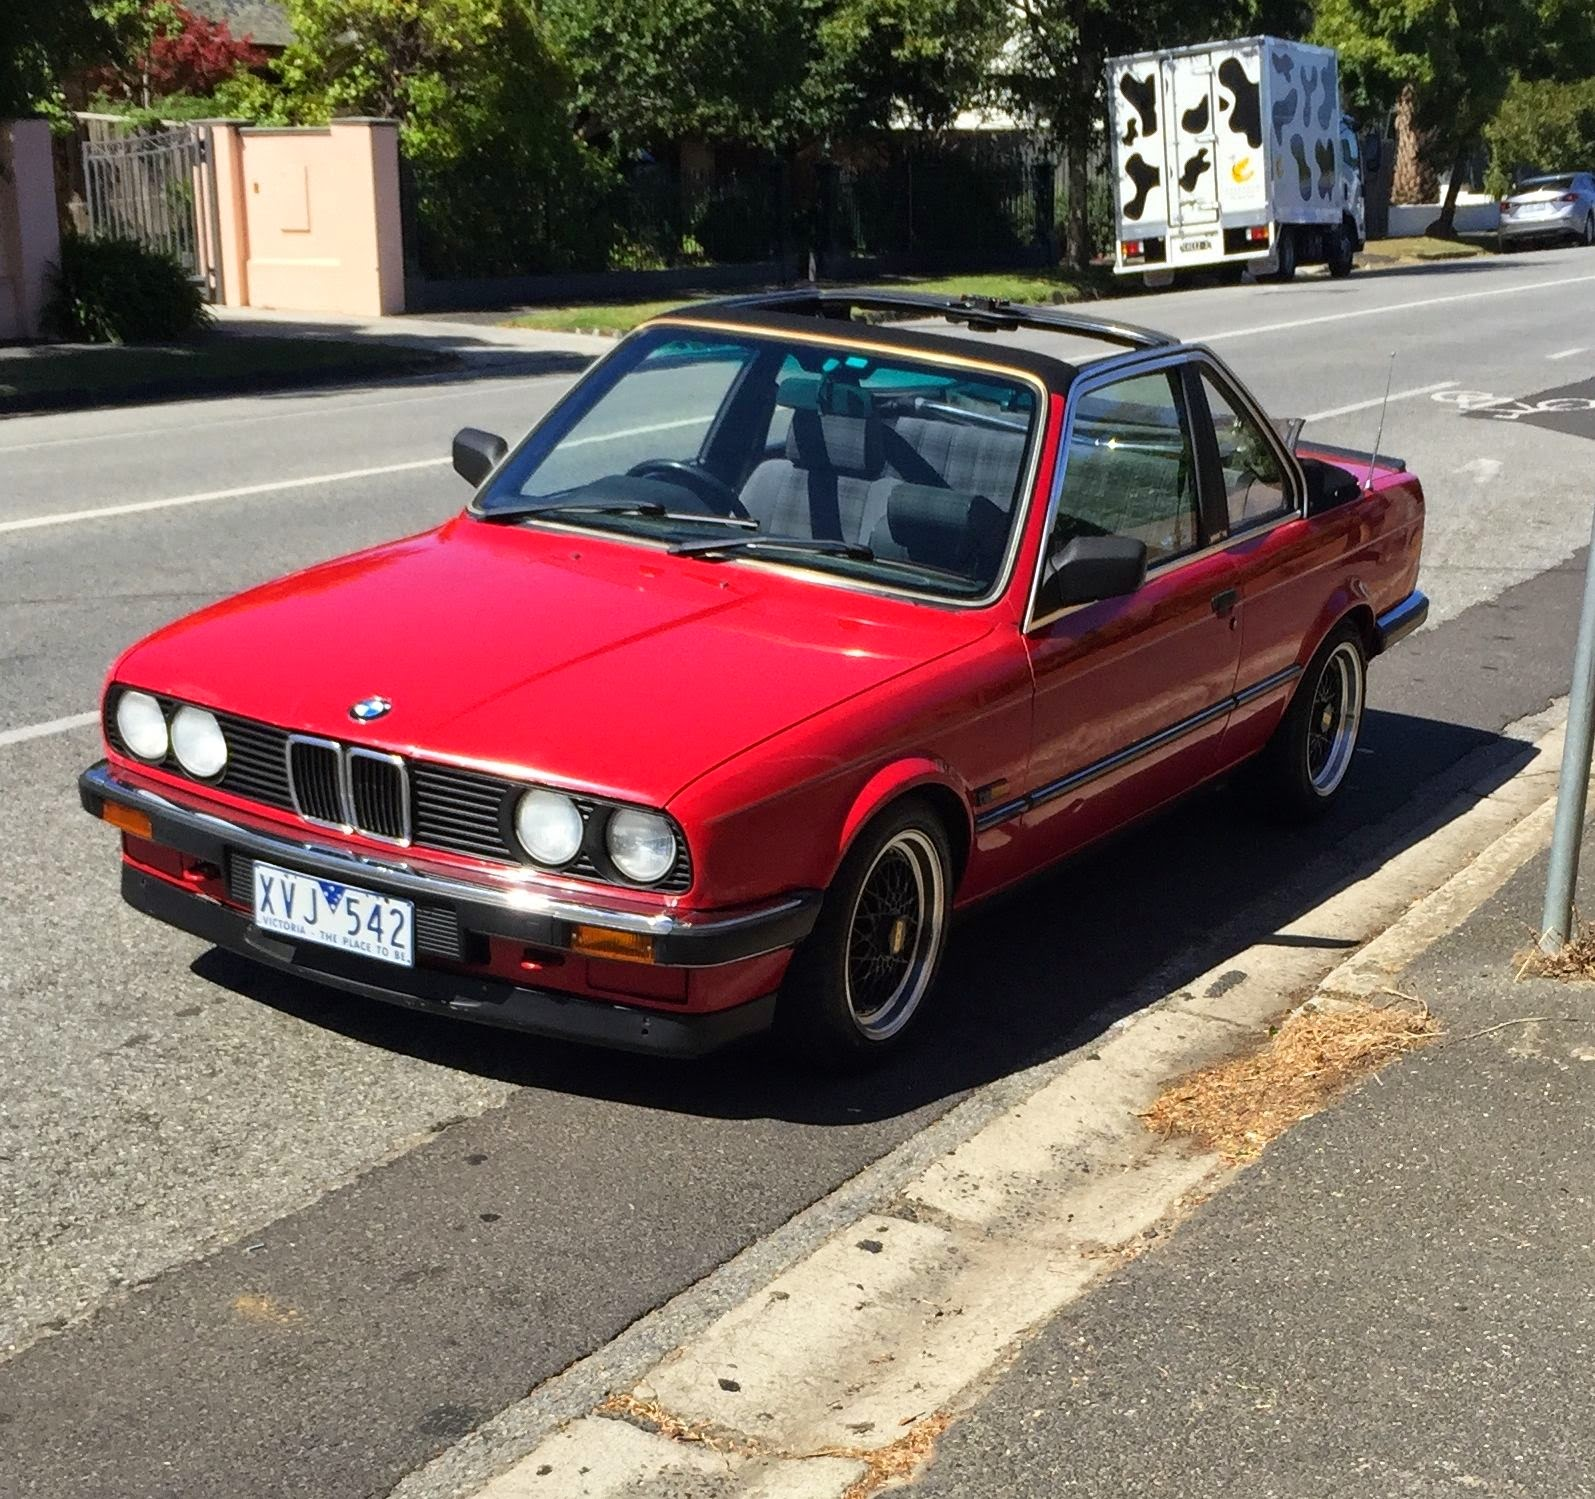 baurspotting 1985 bmw e30 318i tc baur manual for sale in australia rh baurspotting blogspot com 1984 bmw 318i interior 1984 bmw 318i engine diagram [ 1595 x 1499 Pixel ]